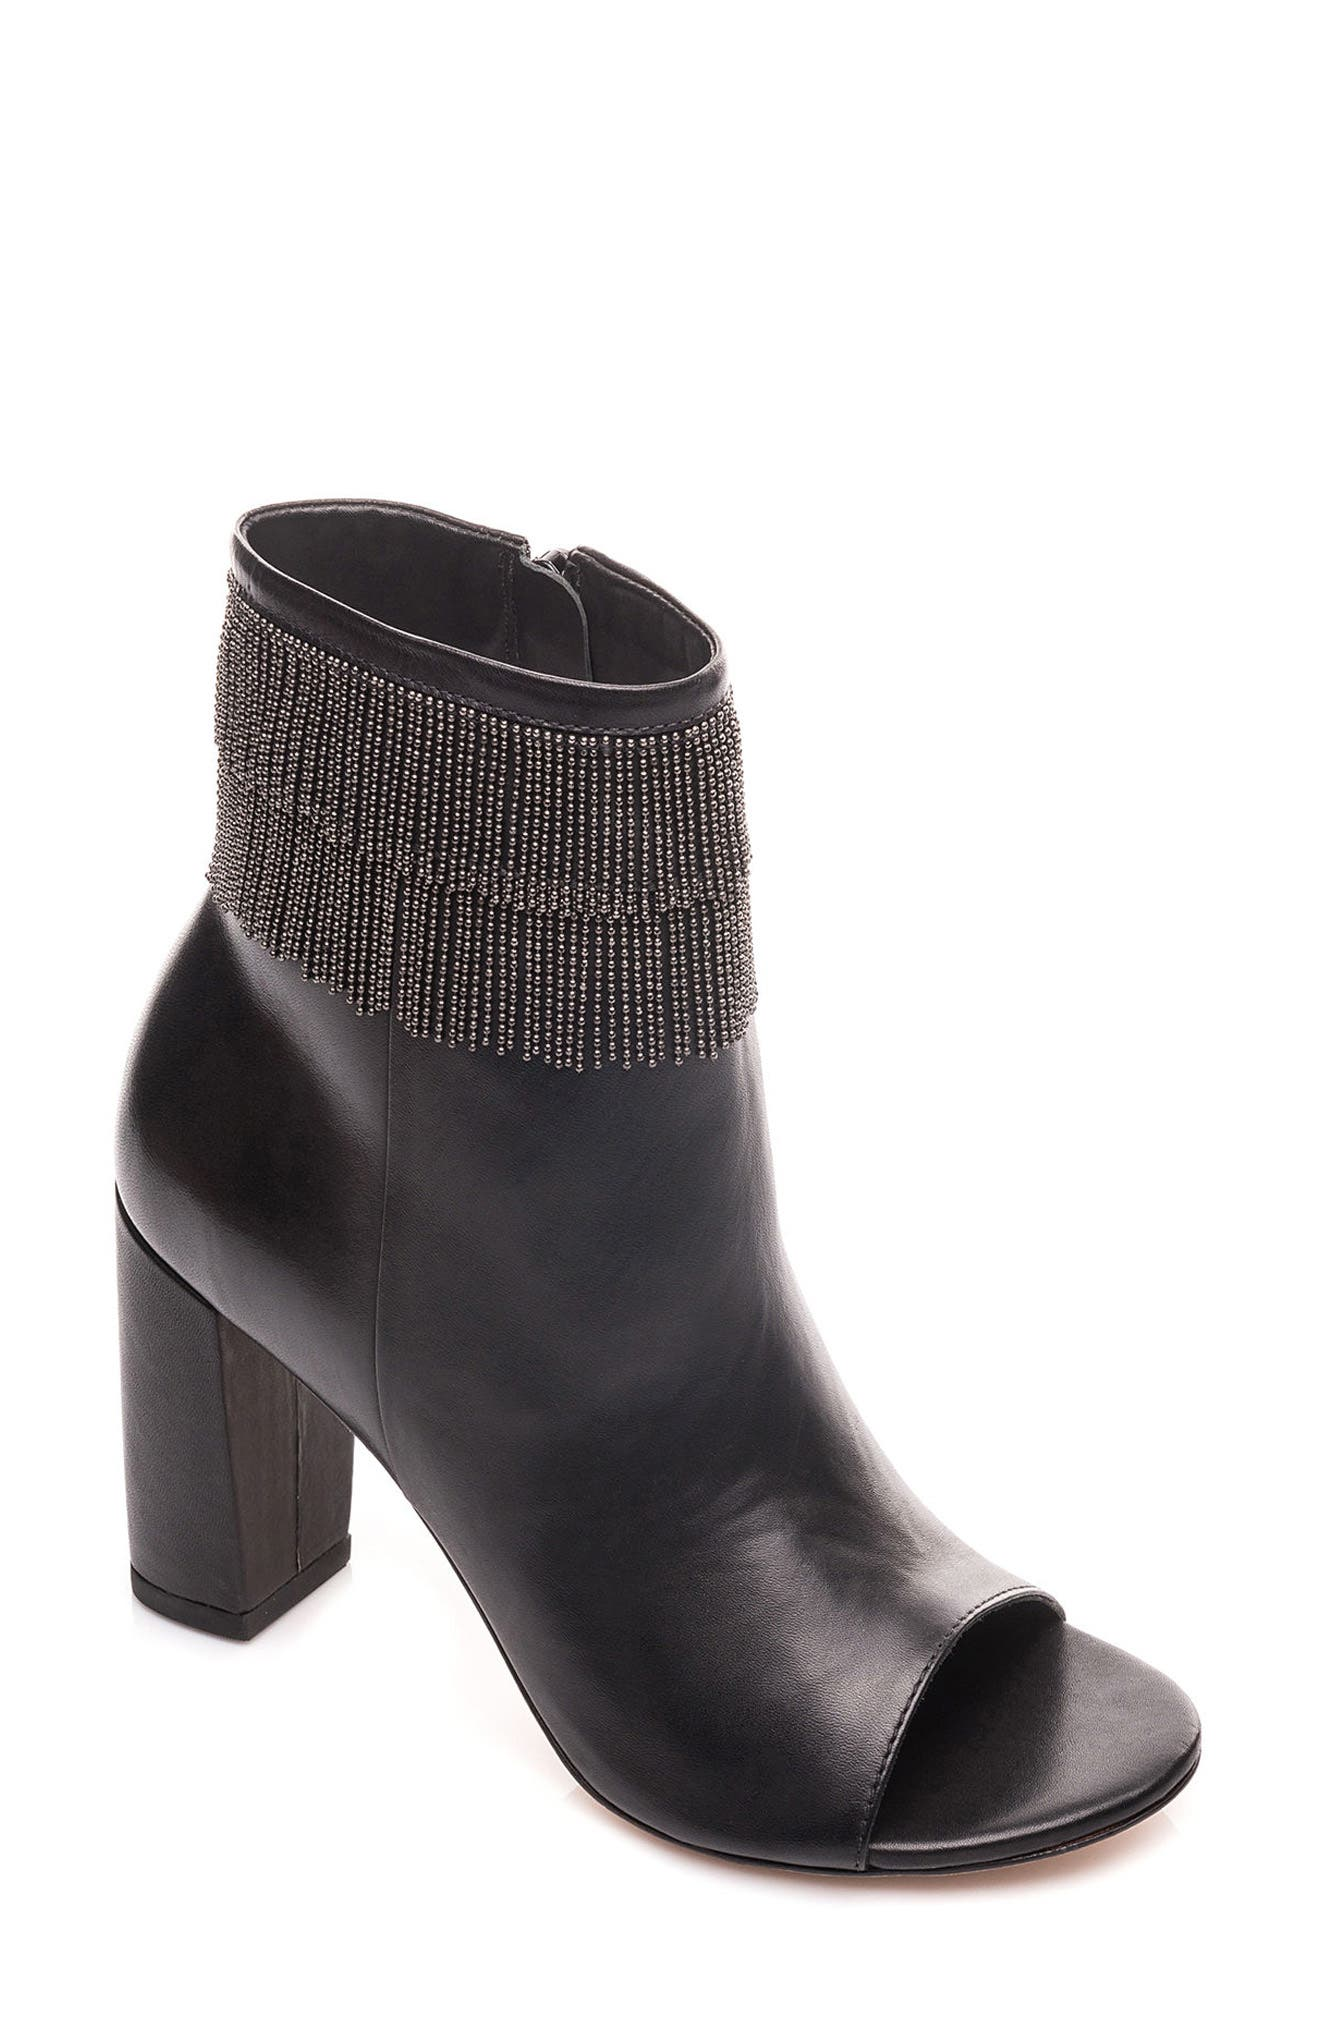 Honour Fringe Peep Toe Bootie,                             Main thumbnail 1, color,                             001